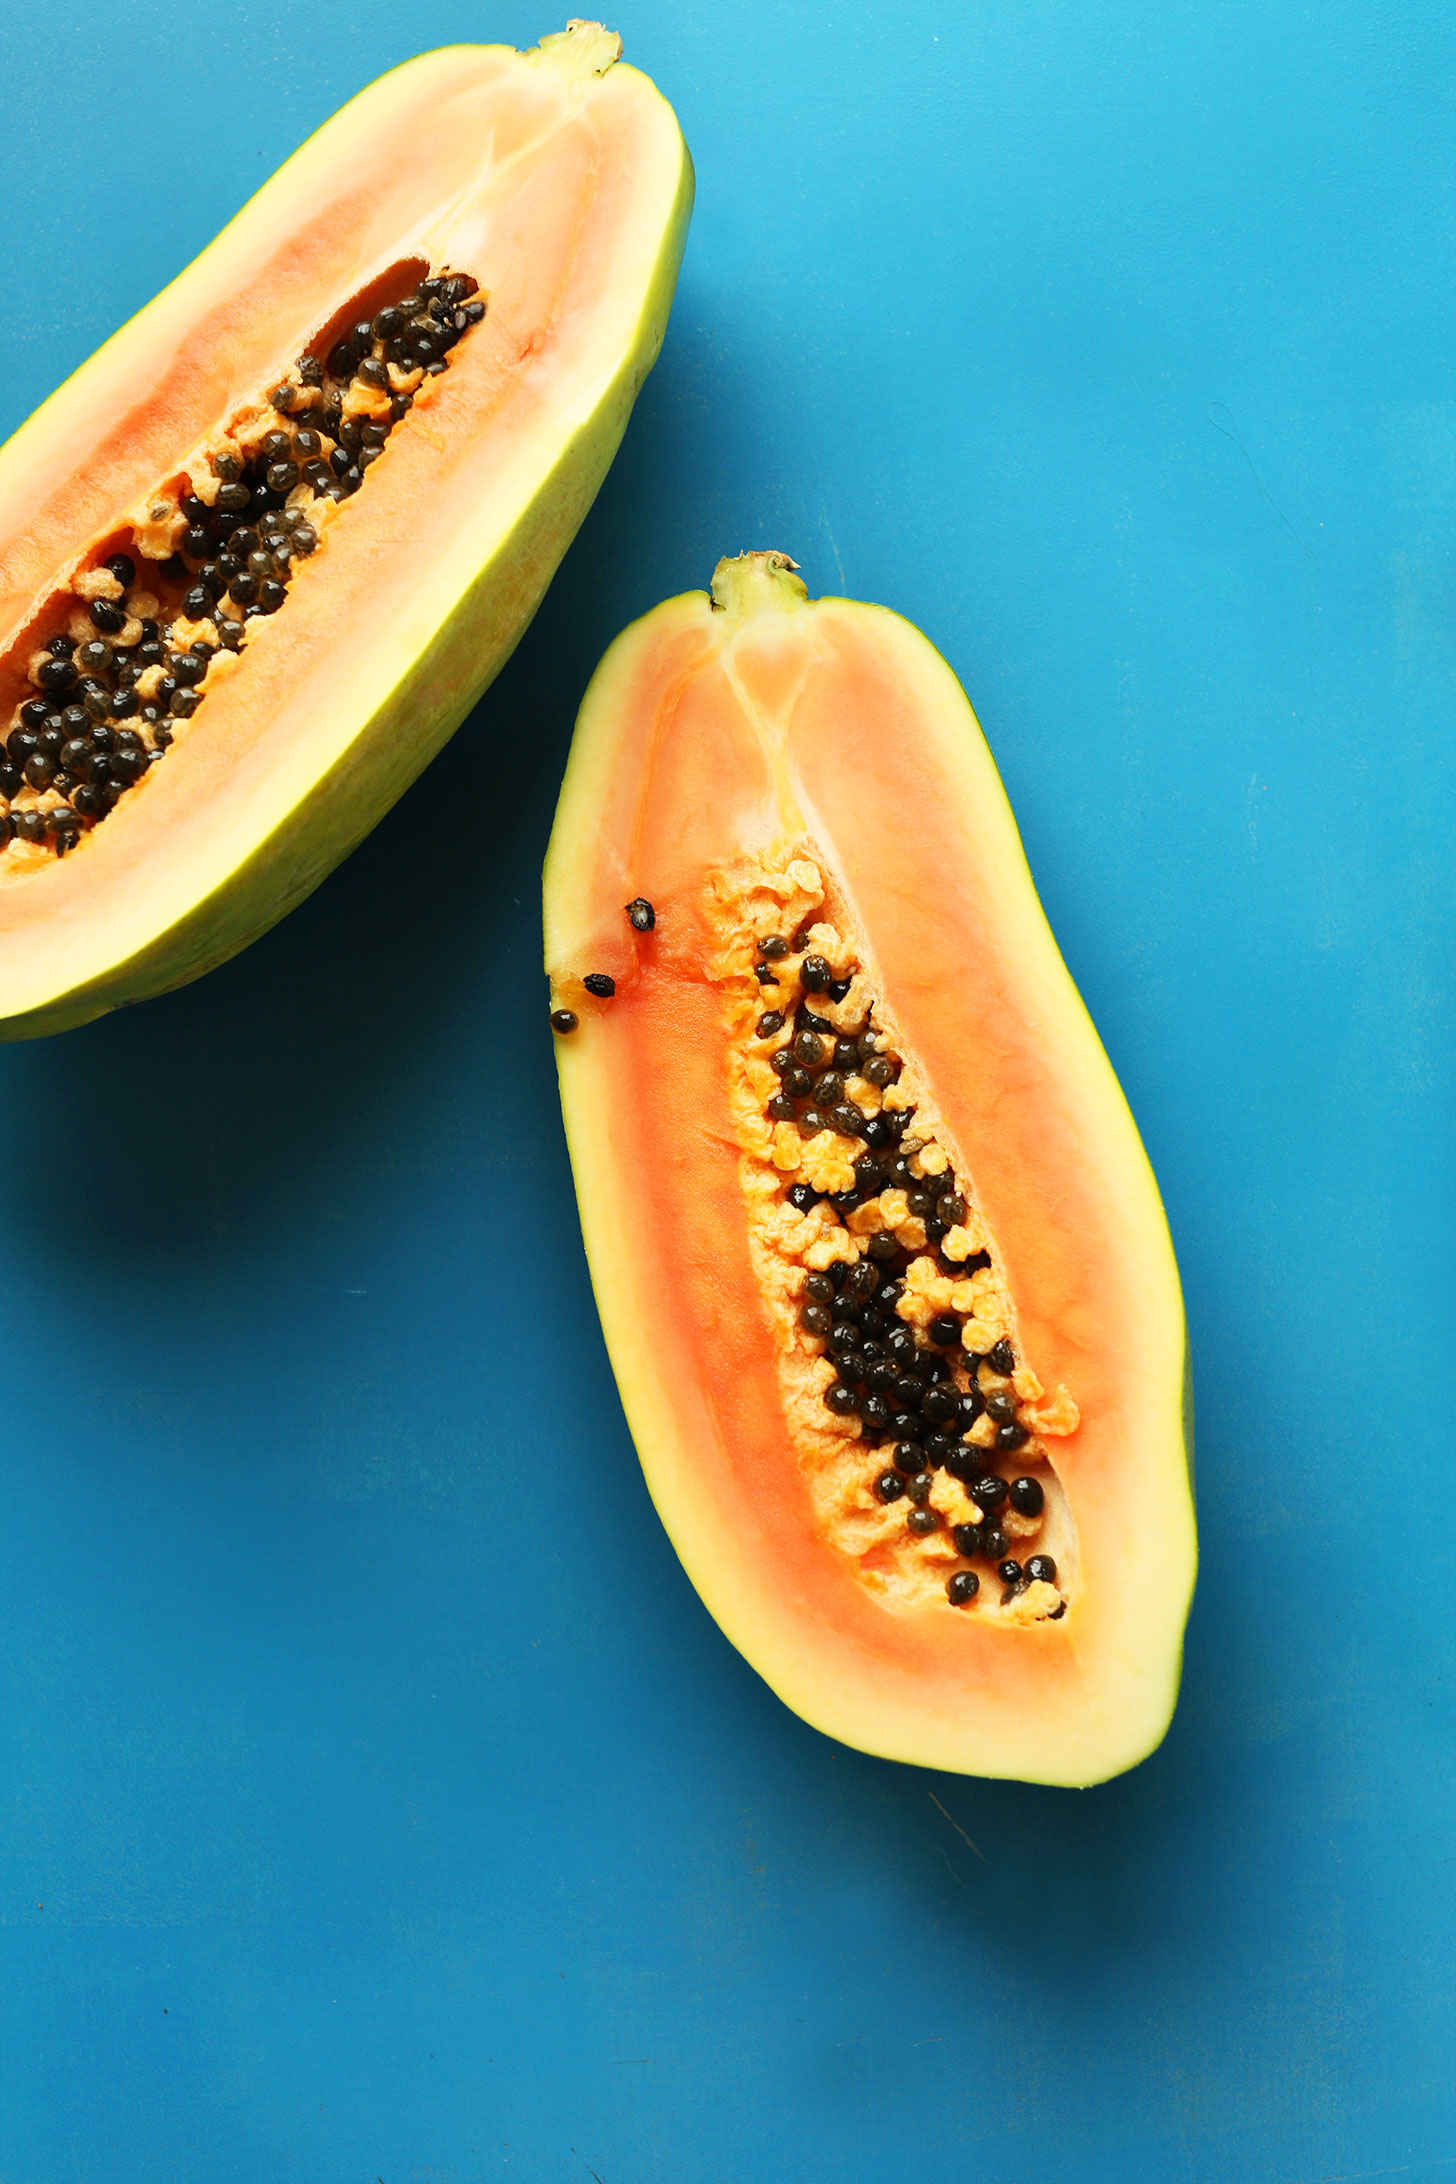 Halved papaya for making into a delicious vegan smoothie